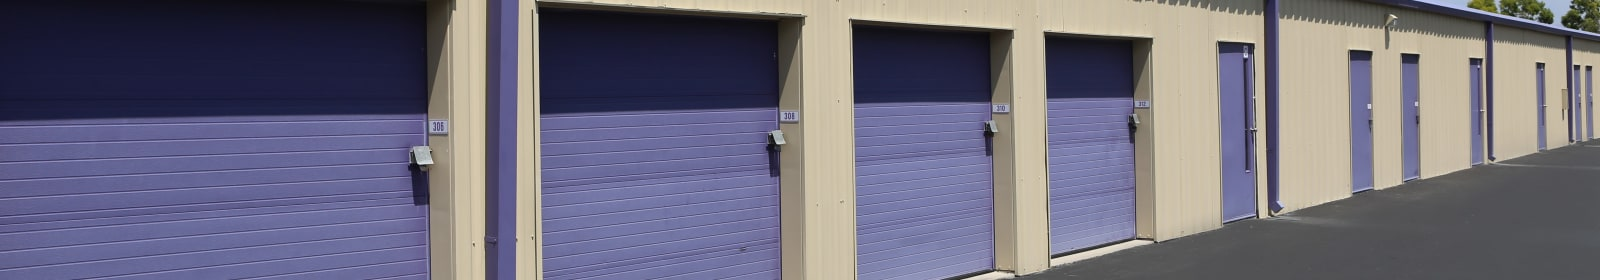 Climate-controlled storage at Midgard Self Storage in Jacksonville, Florida